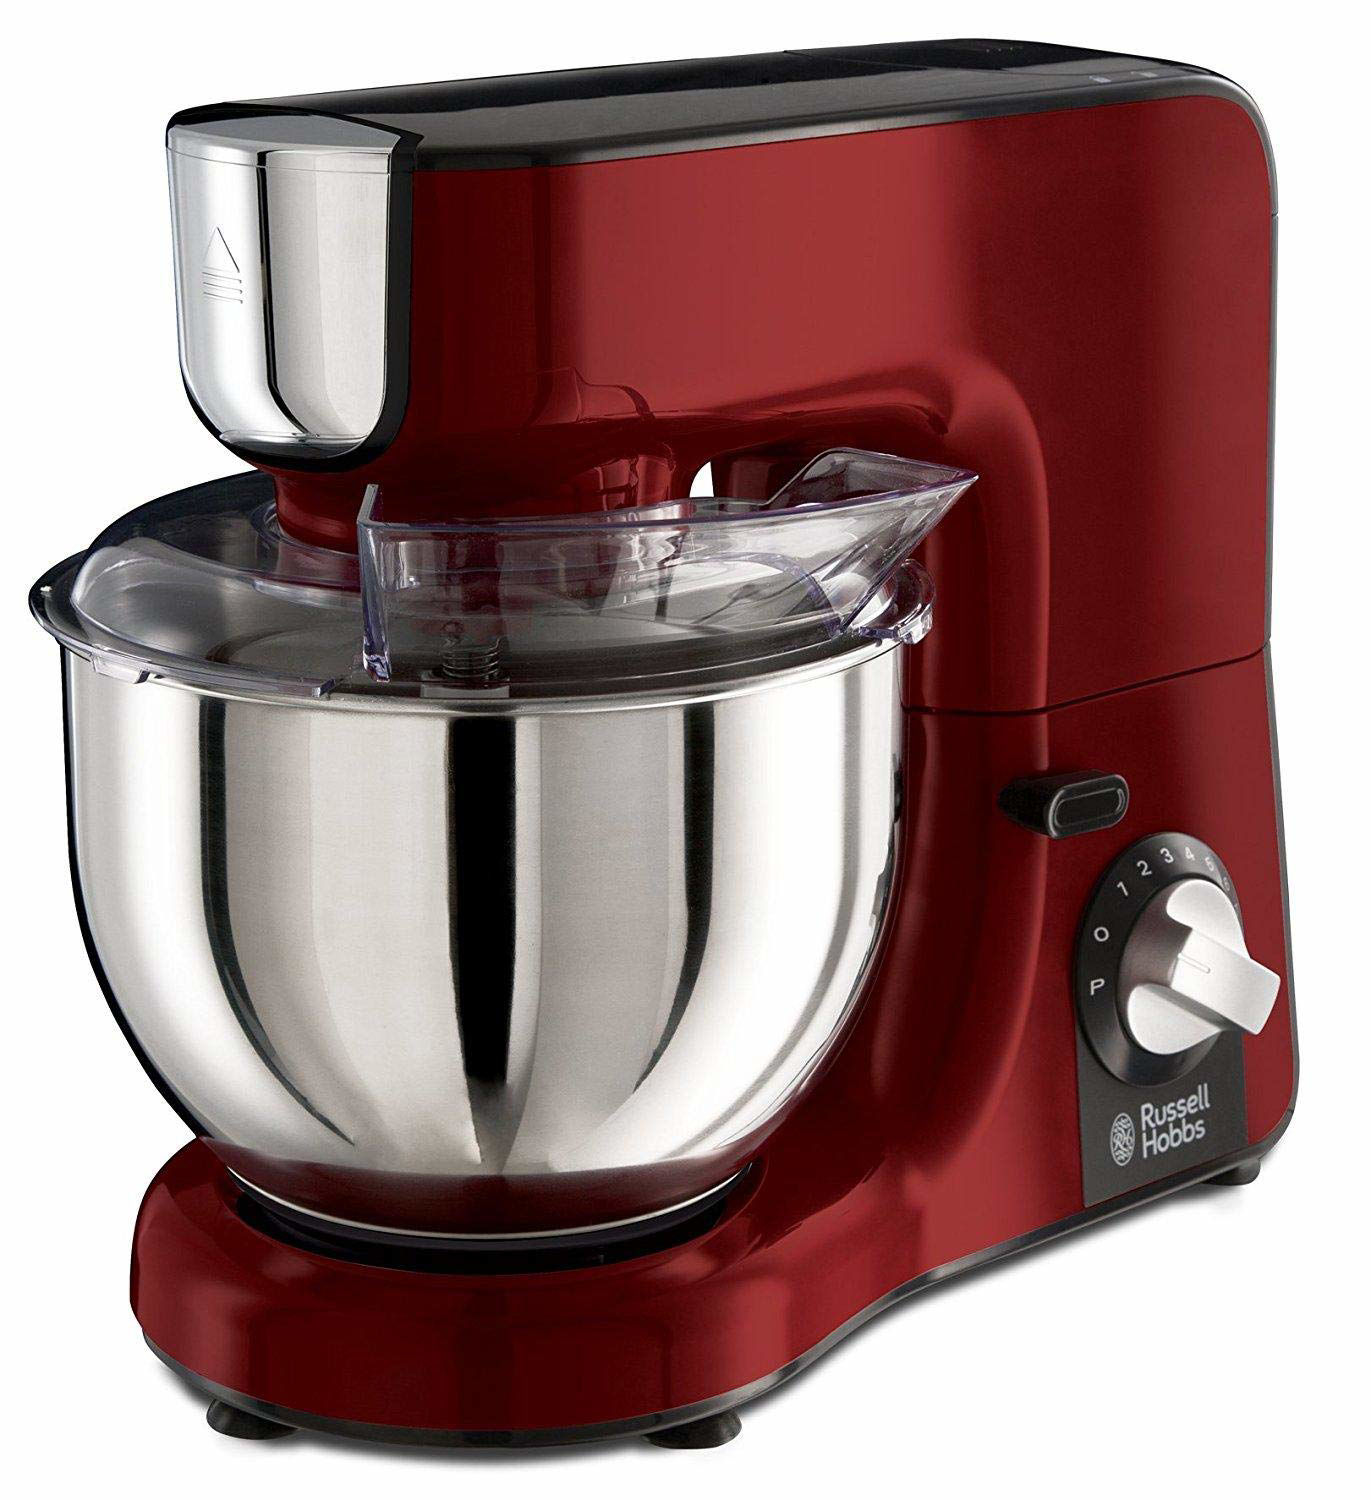 Picture of Russell Hobbs Stand Mixer RH23480